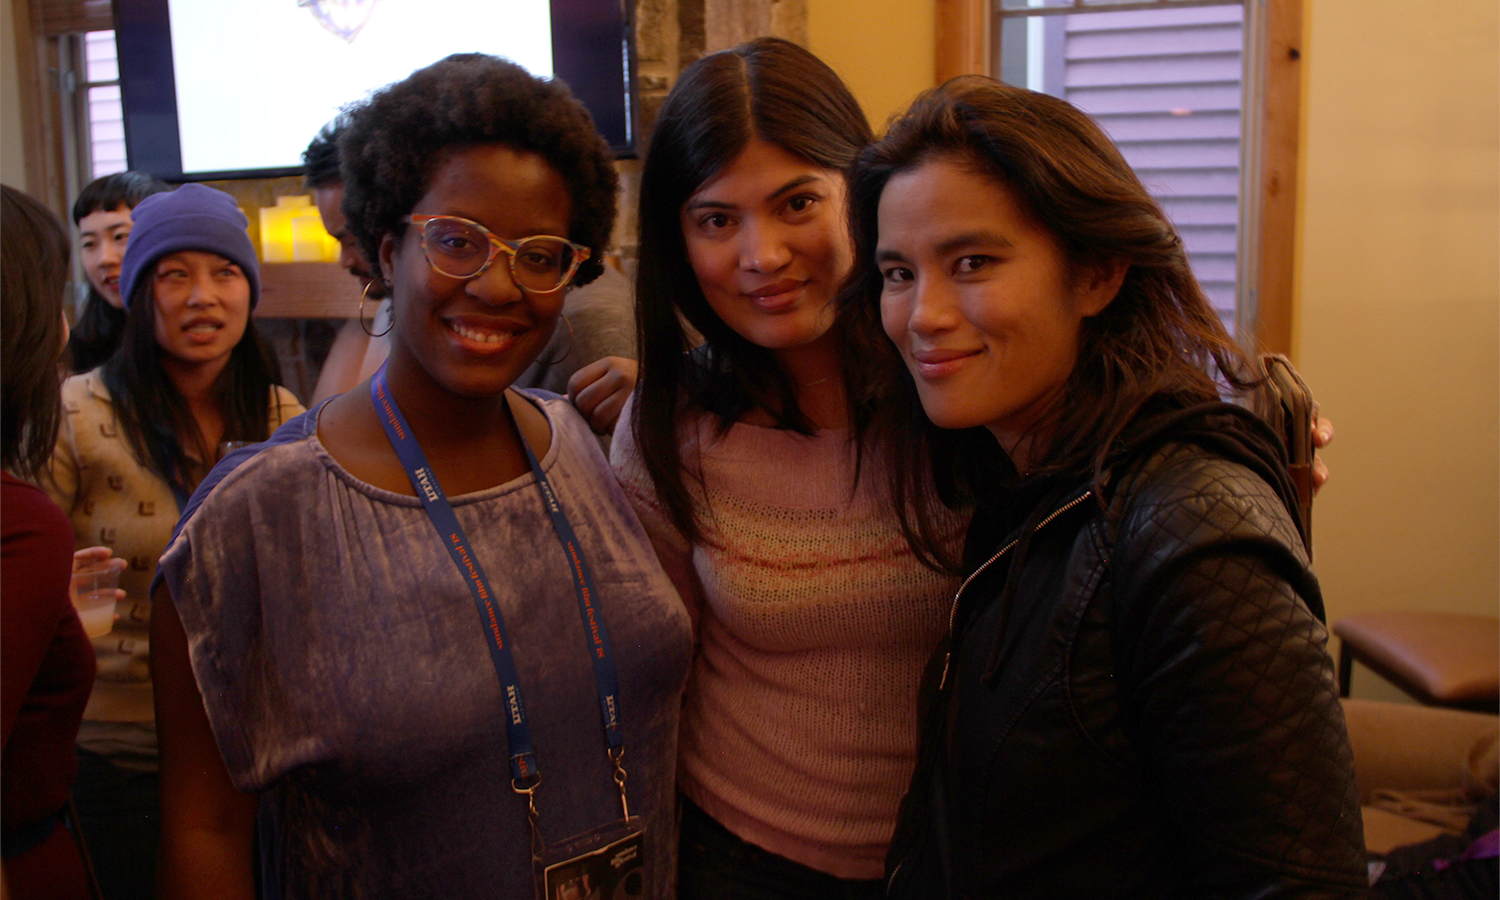 Kickstarter Lodge's Iyabo Boyd is greeted by filmmakers Valerie Castillo Martinez and Diane Paragas. (Photo: Abraham Ferrer/Visual Communications Photographic Archive)